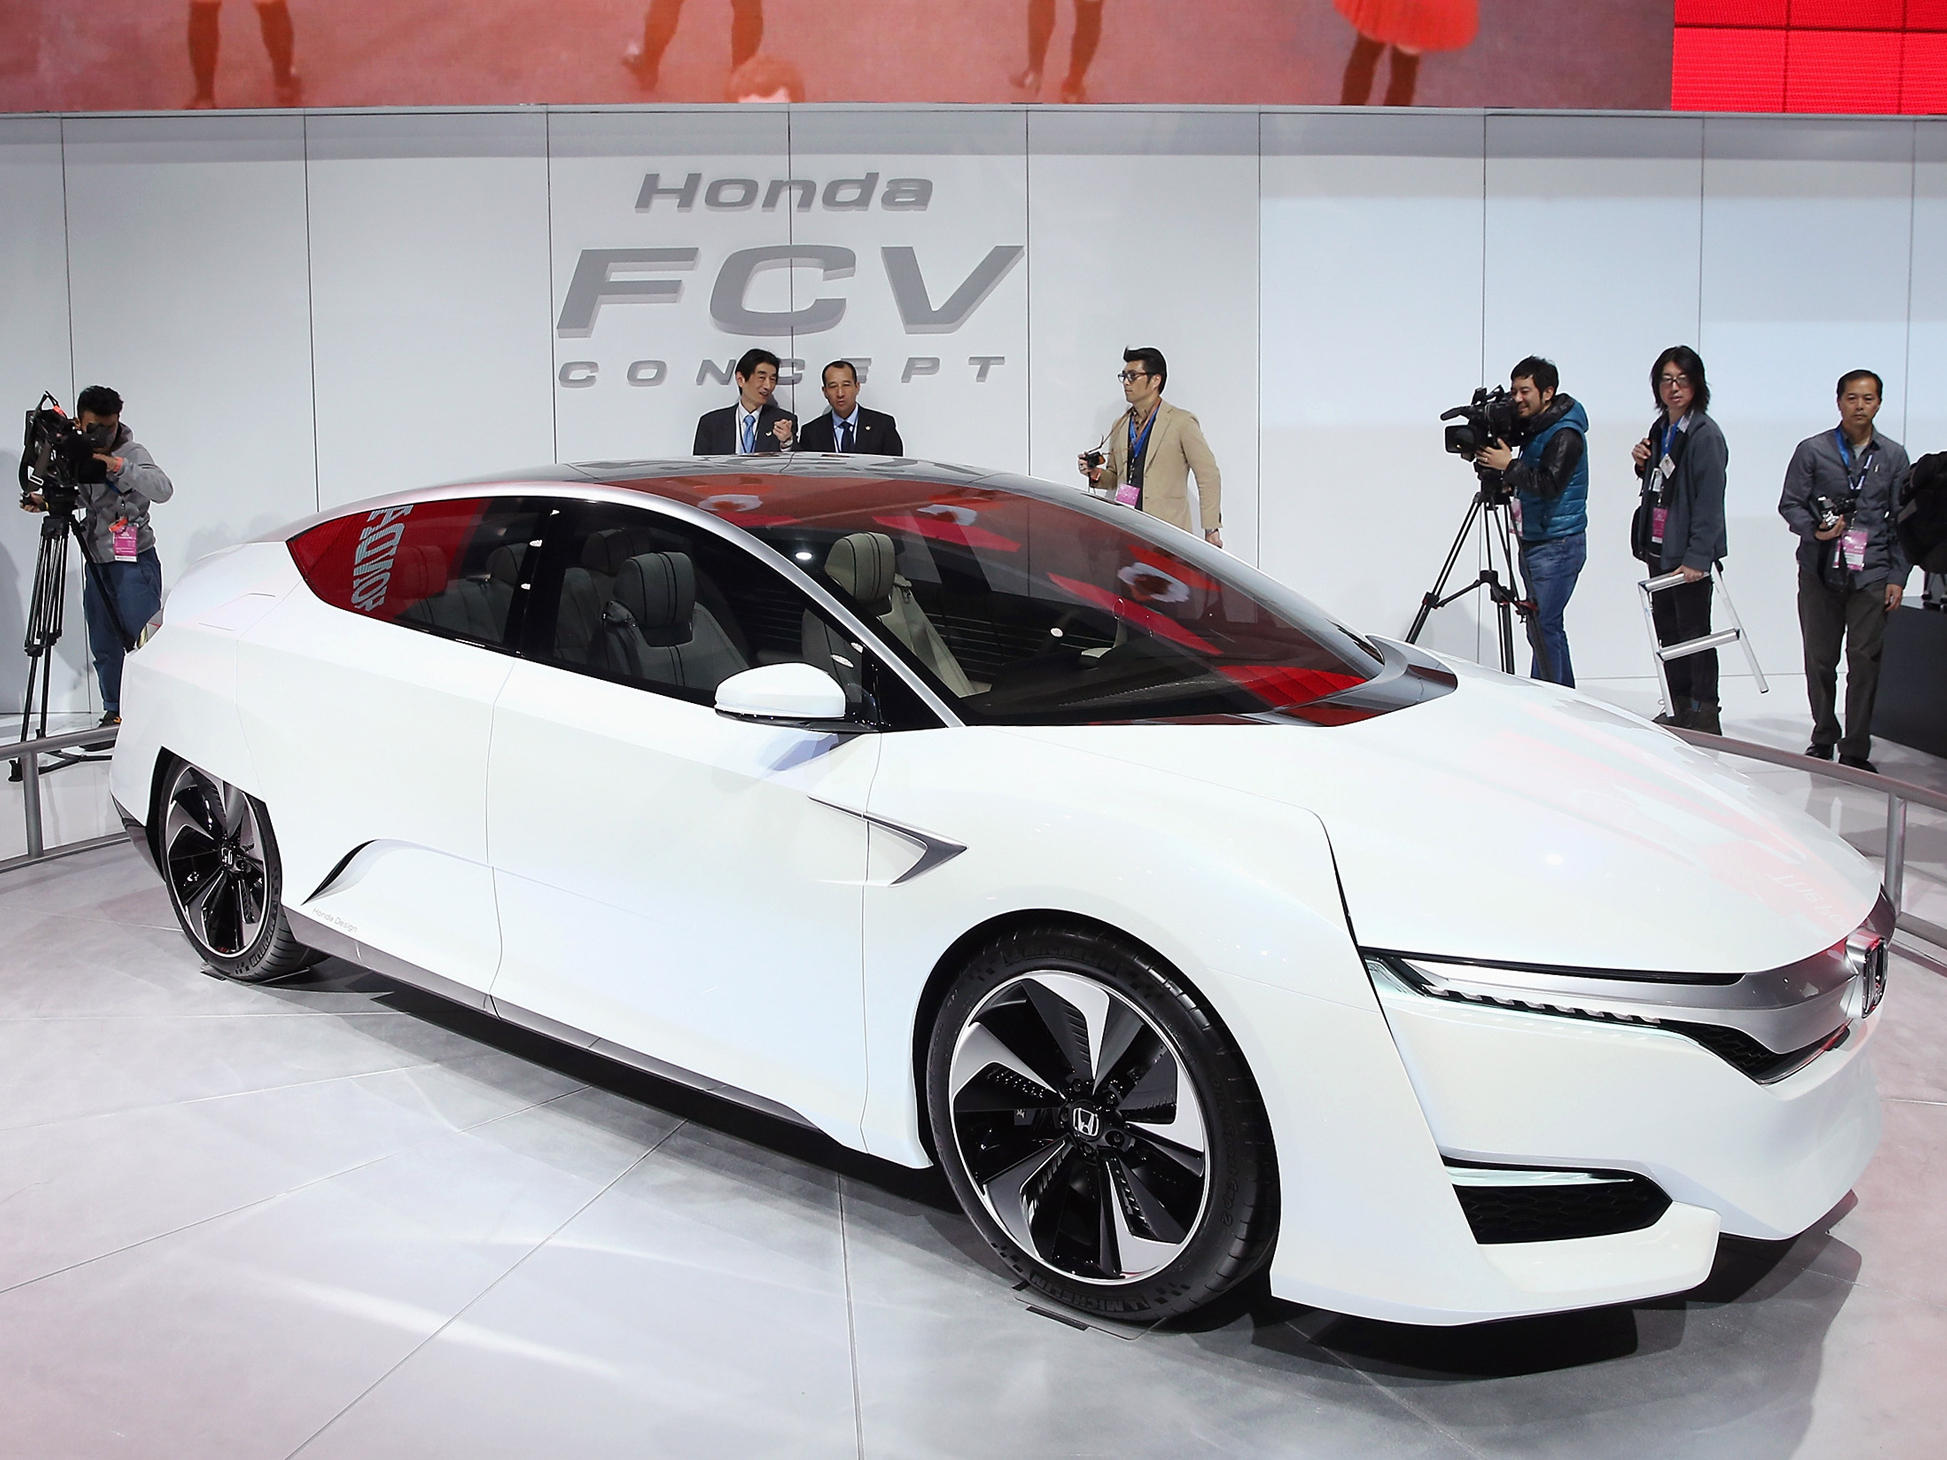 Guests Look Over The Honda Fcv Fuel Cell Ed Concept Car During Media Preview At North American International Auto Show In Detroit